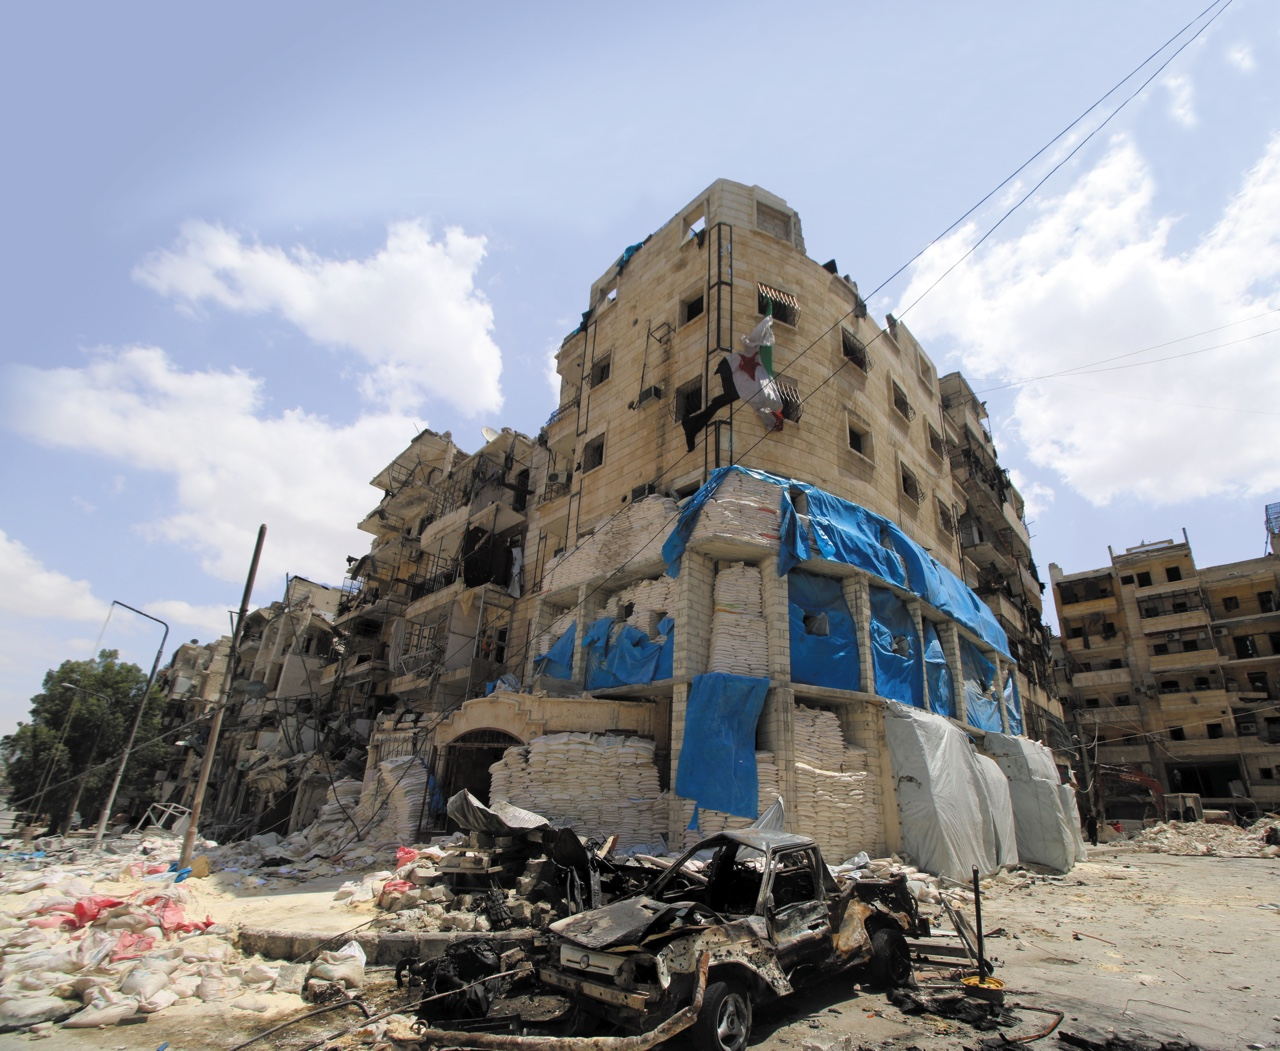 Al-Quds hospital in Aleppo, Syria after it was hit by airstrikes in April 2016. Photo: REUTERS/Abdalrhman Ismail